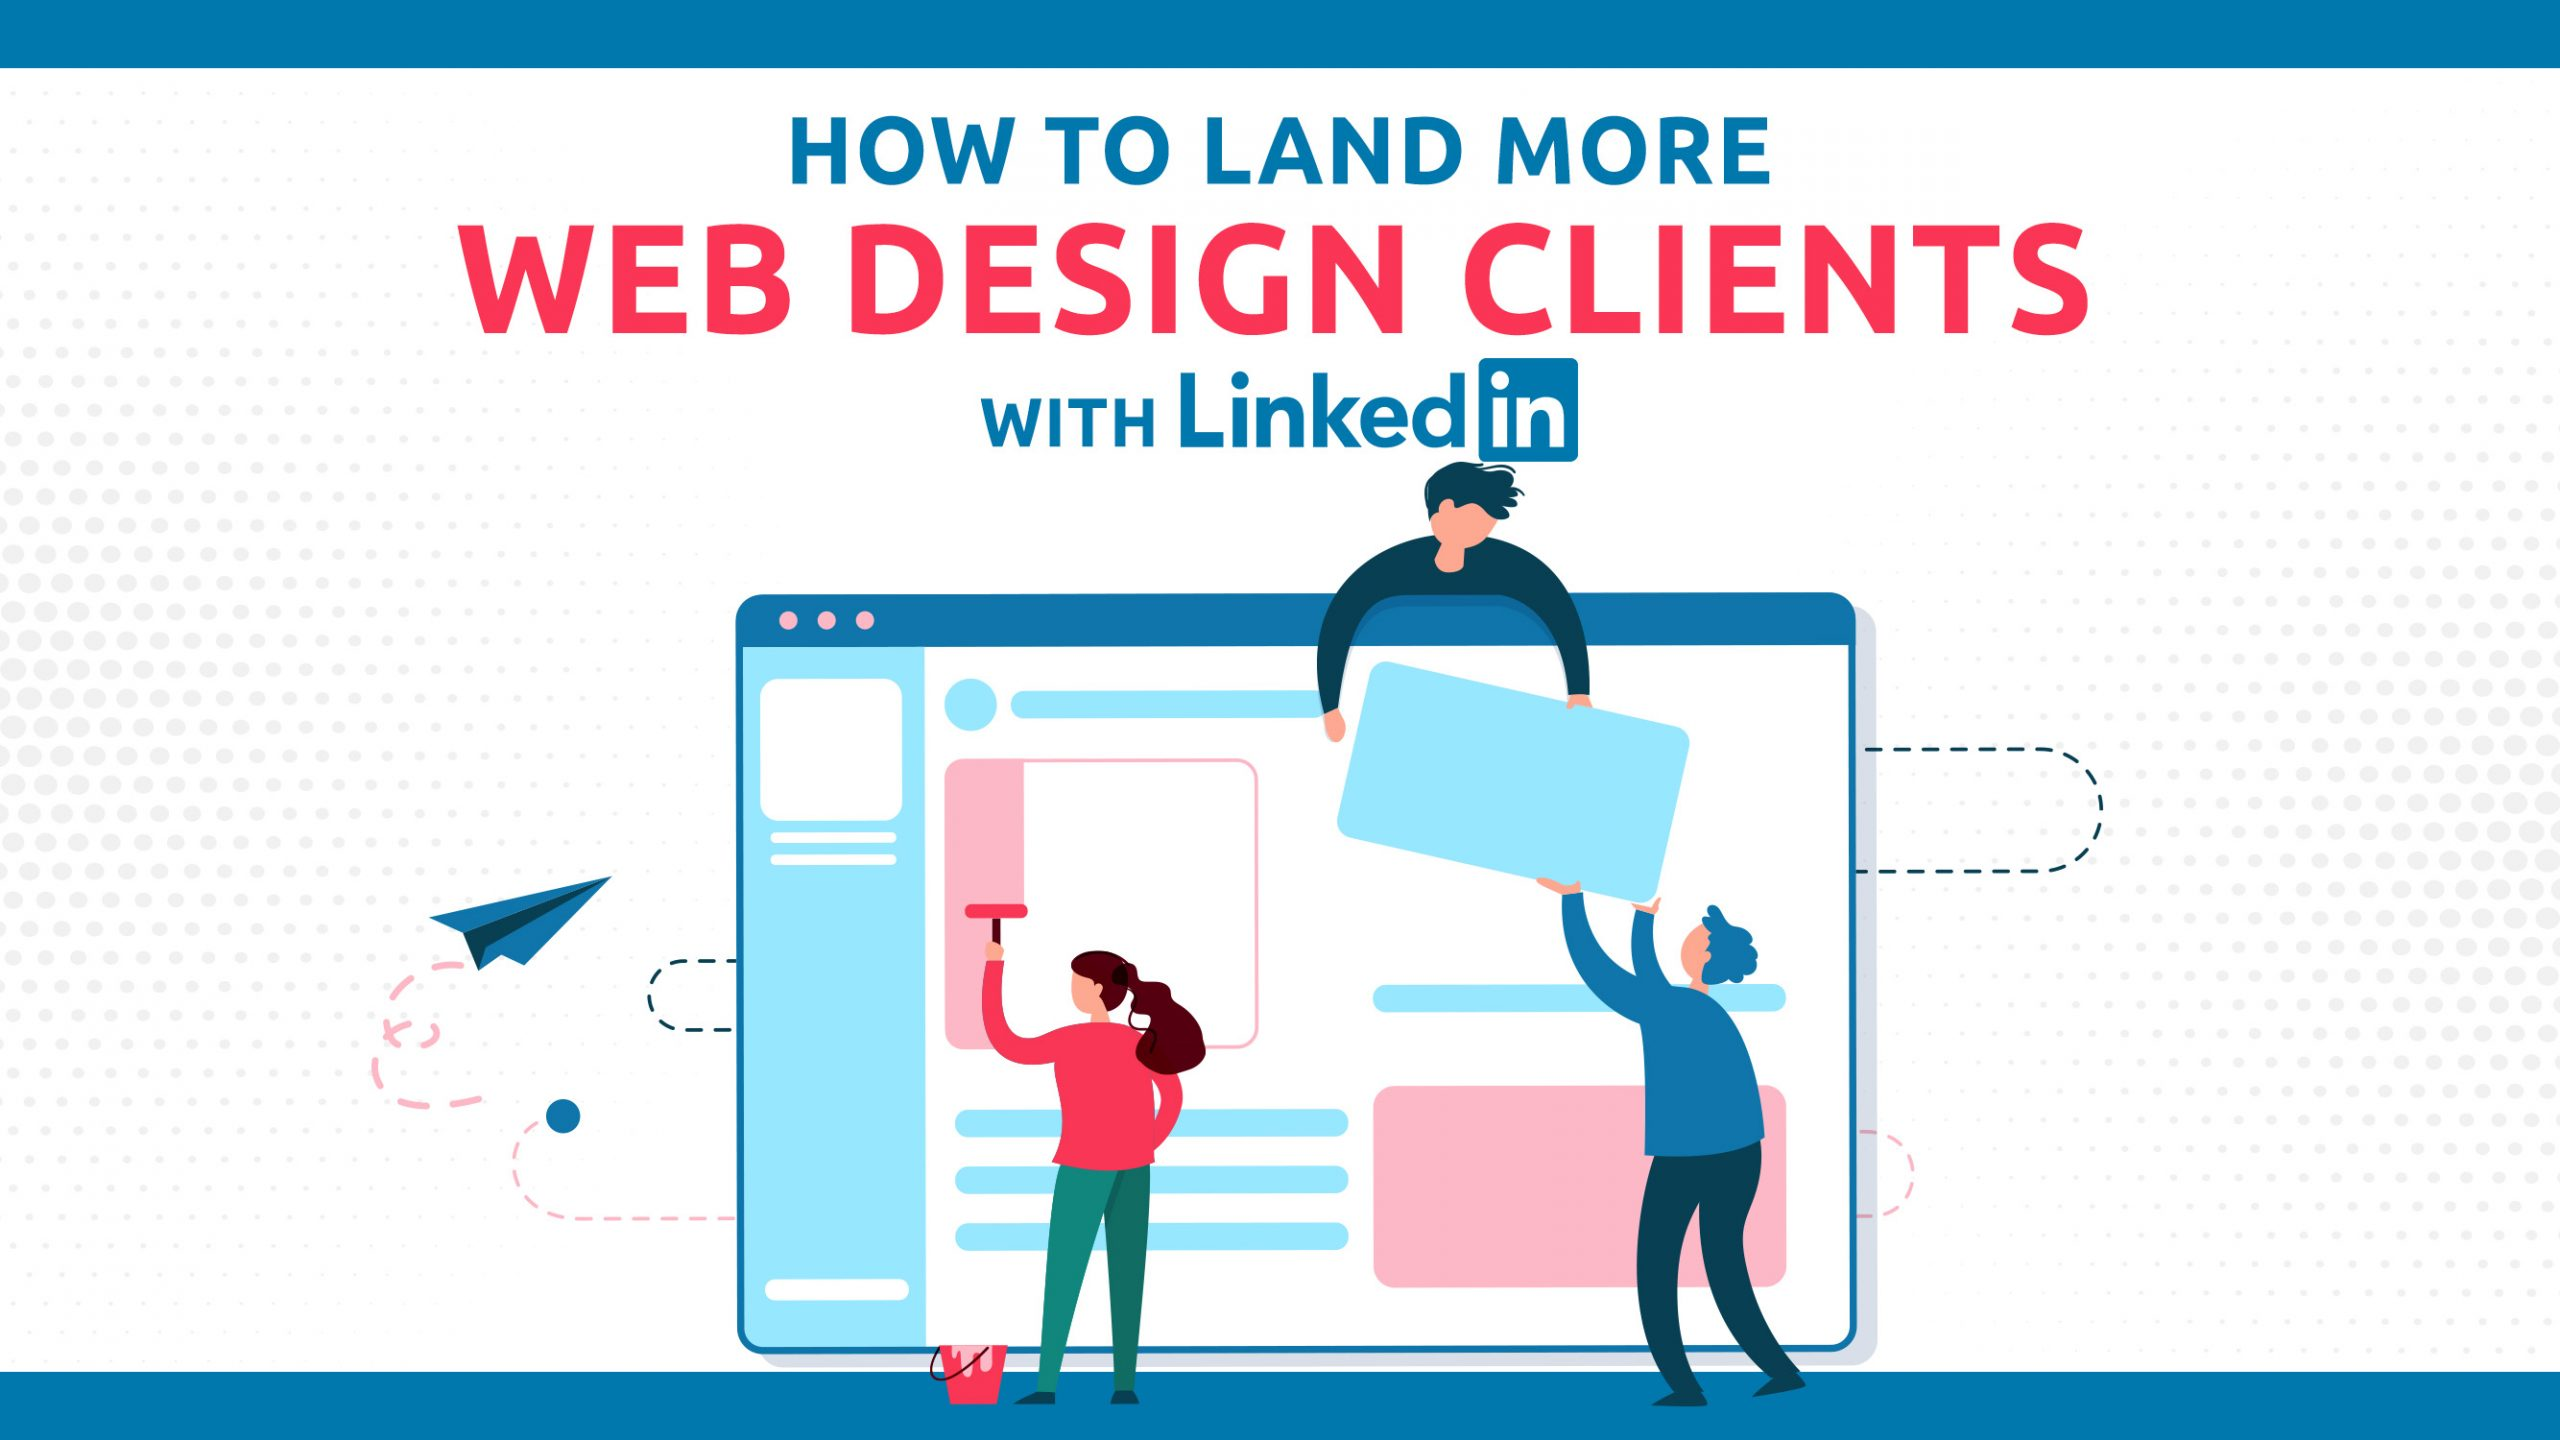 How To Land More Web Design Clients With LinkedIn